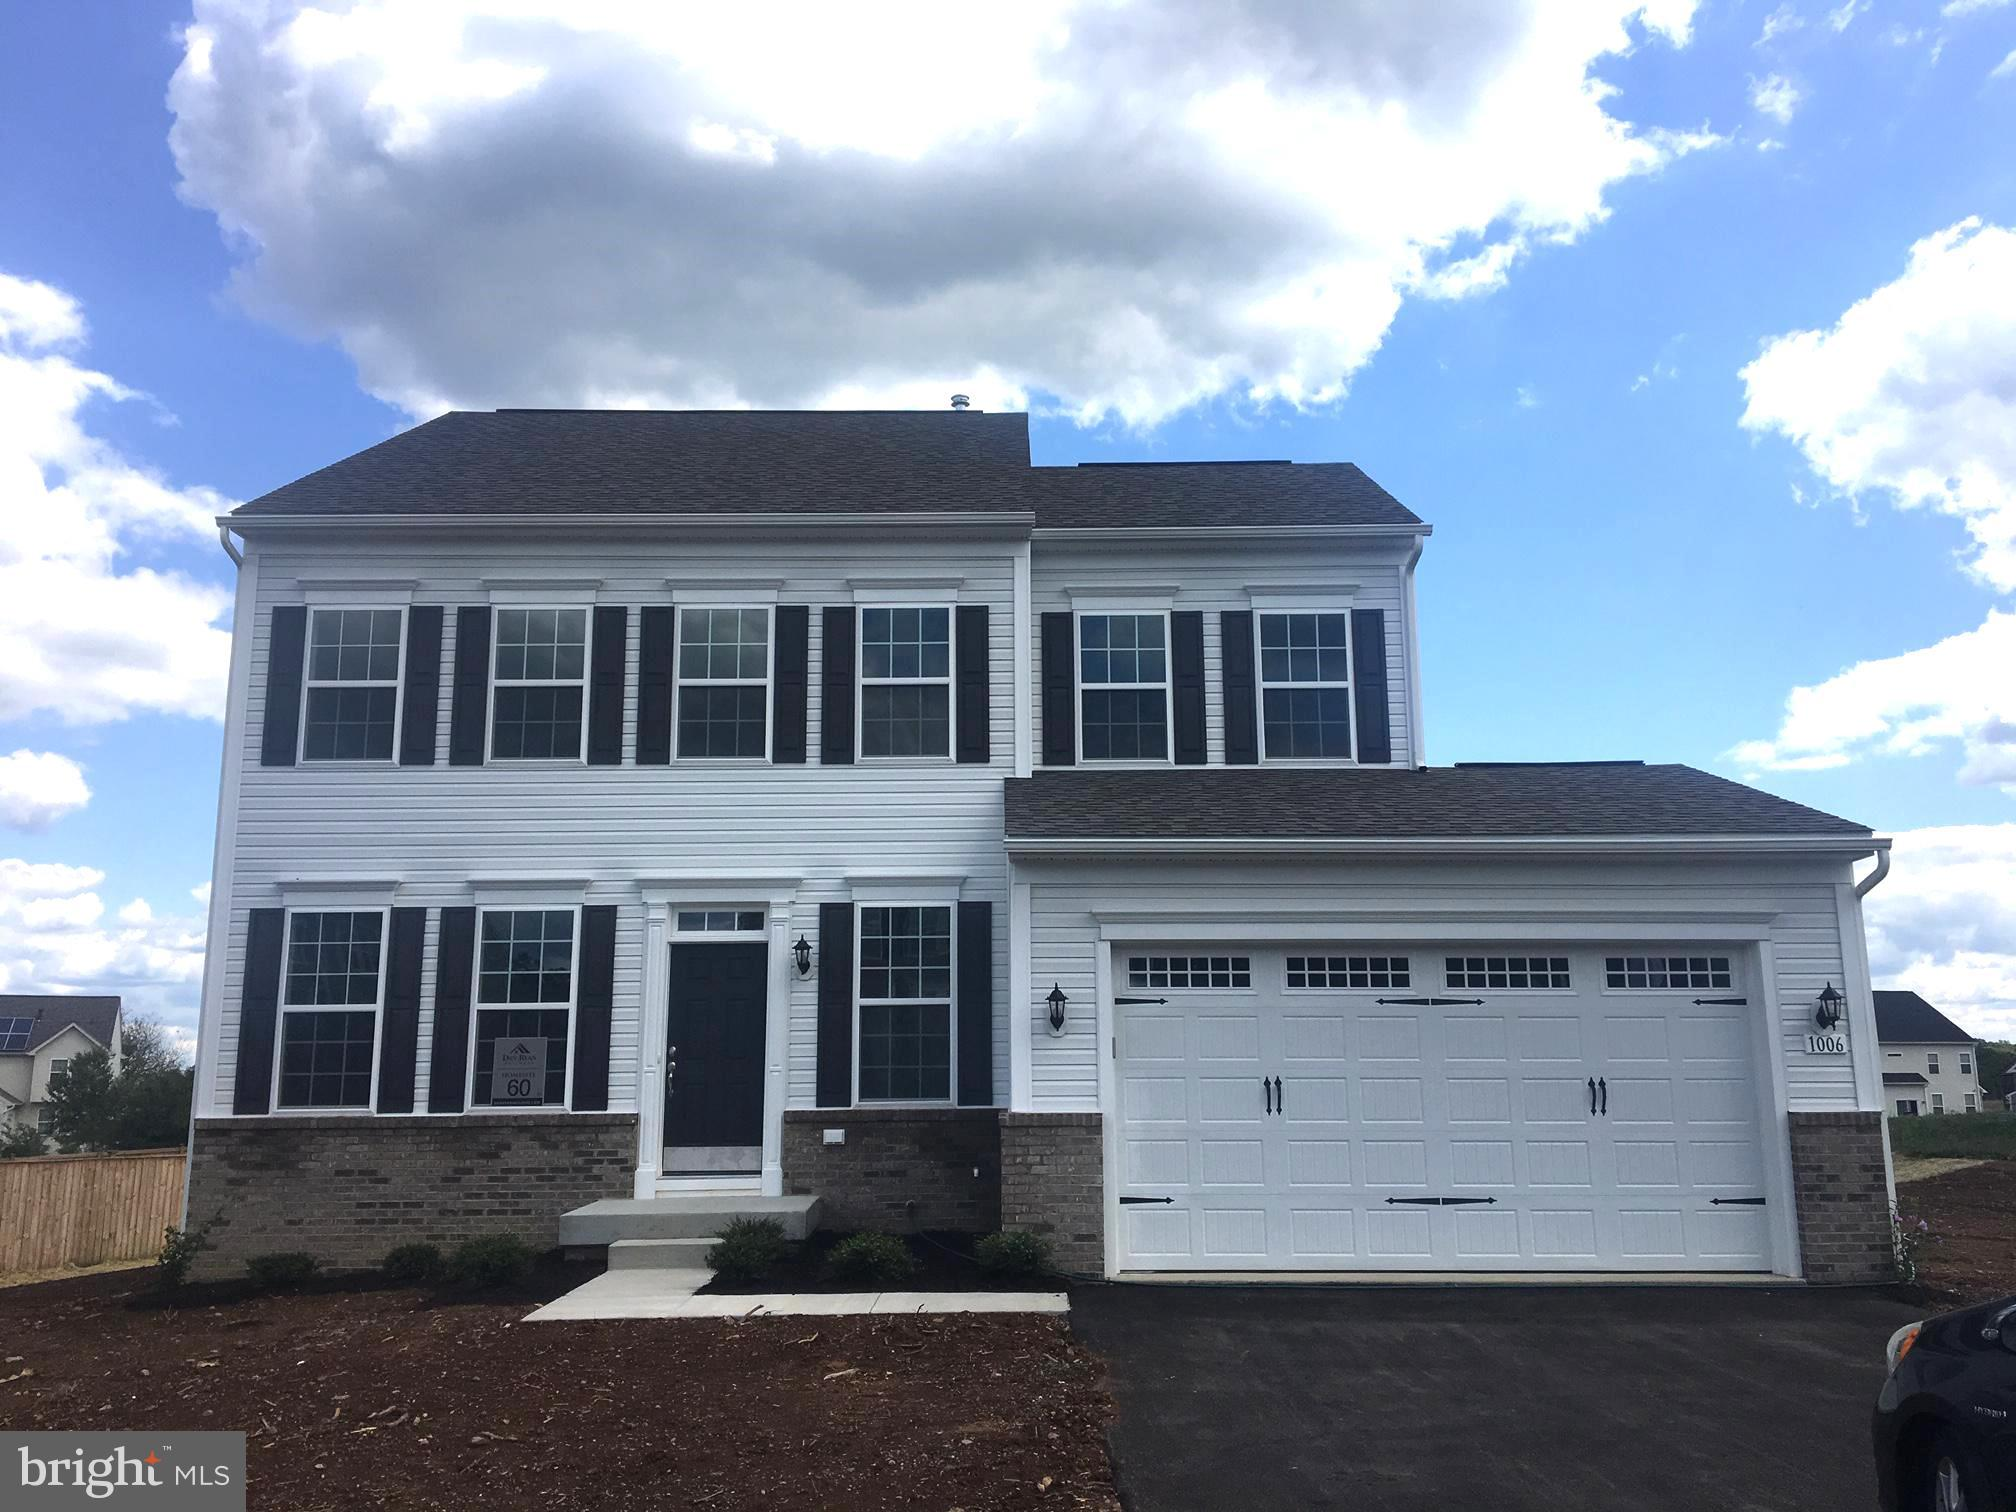 Welcome home to this gorgeous partial brick front 4B, 2 1/2 BA, 2 car garage Cypress II floorplan featuring a 4 ft. rear extension on all 3 levels,  1 1/2 story family room, stone to ceiling natural gas fireplace, spacious kitchen with upgraded maple cabinets in Willow, large island, S.S. appliances, level 2 granite, hardwood on the entire 1st floor, master suite w/cathedral ceiling, upstairs laundry & unfinished walkup bsmt. w/3pc. rough in for future expansion on 1/3 plus acres in sought after McCauley Crossing.